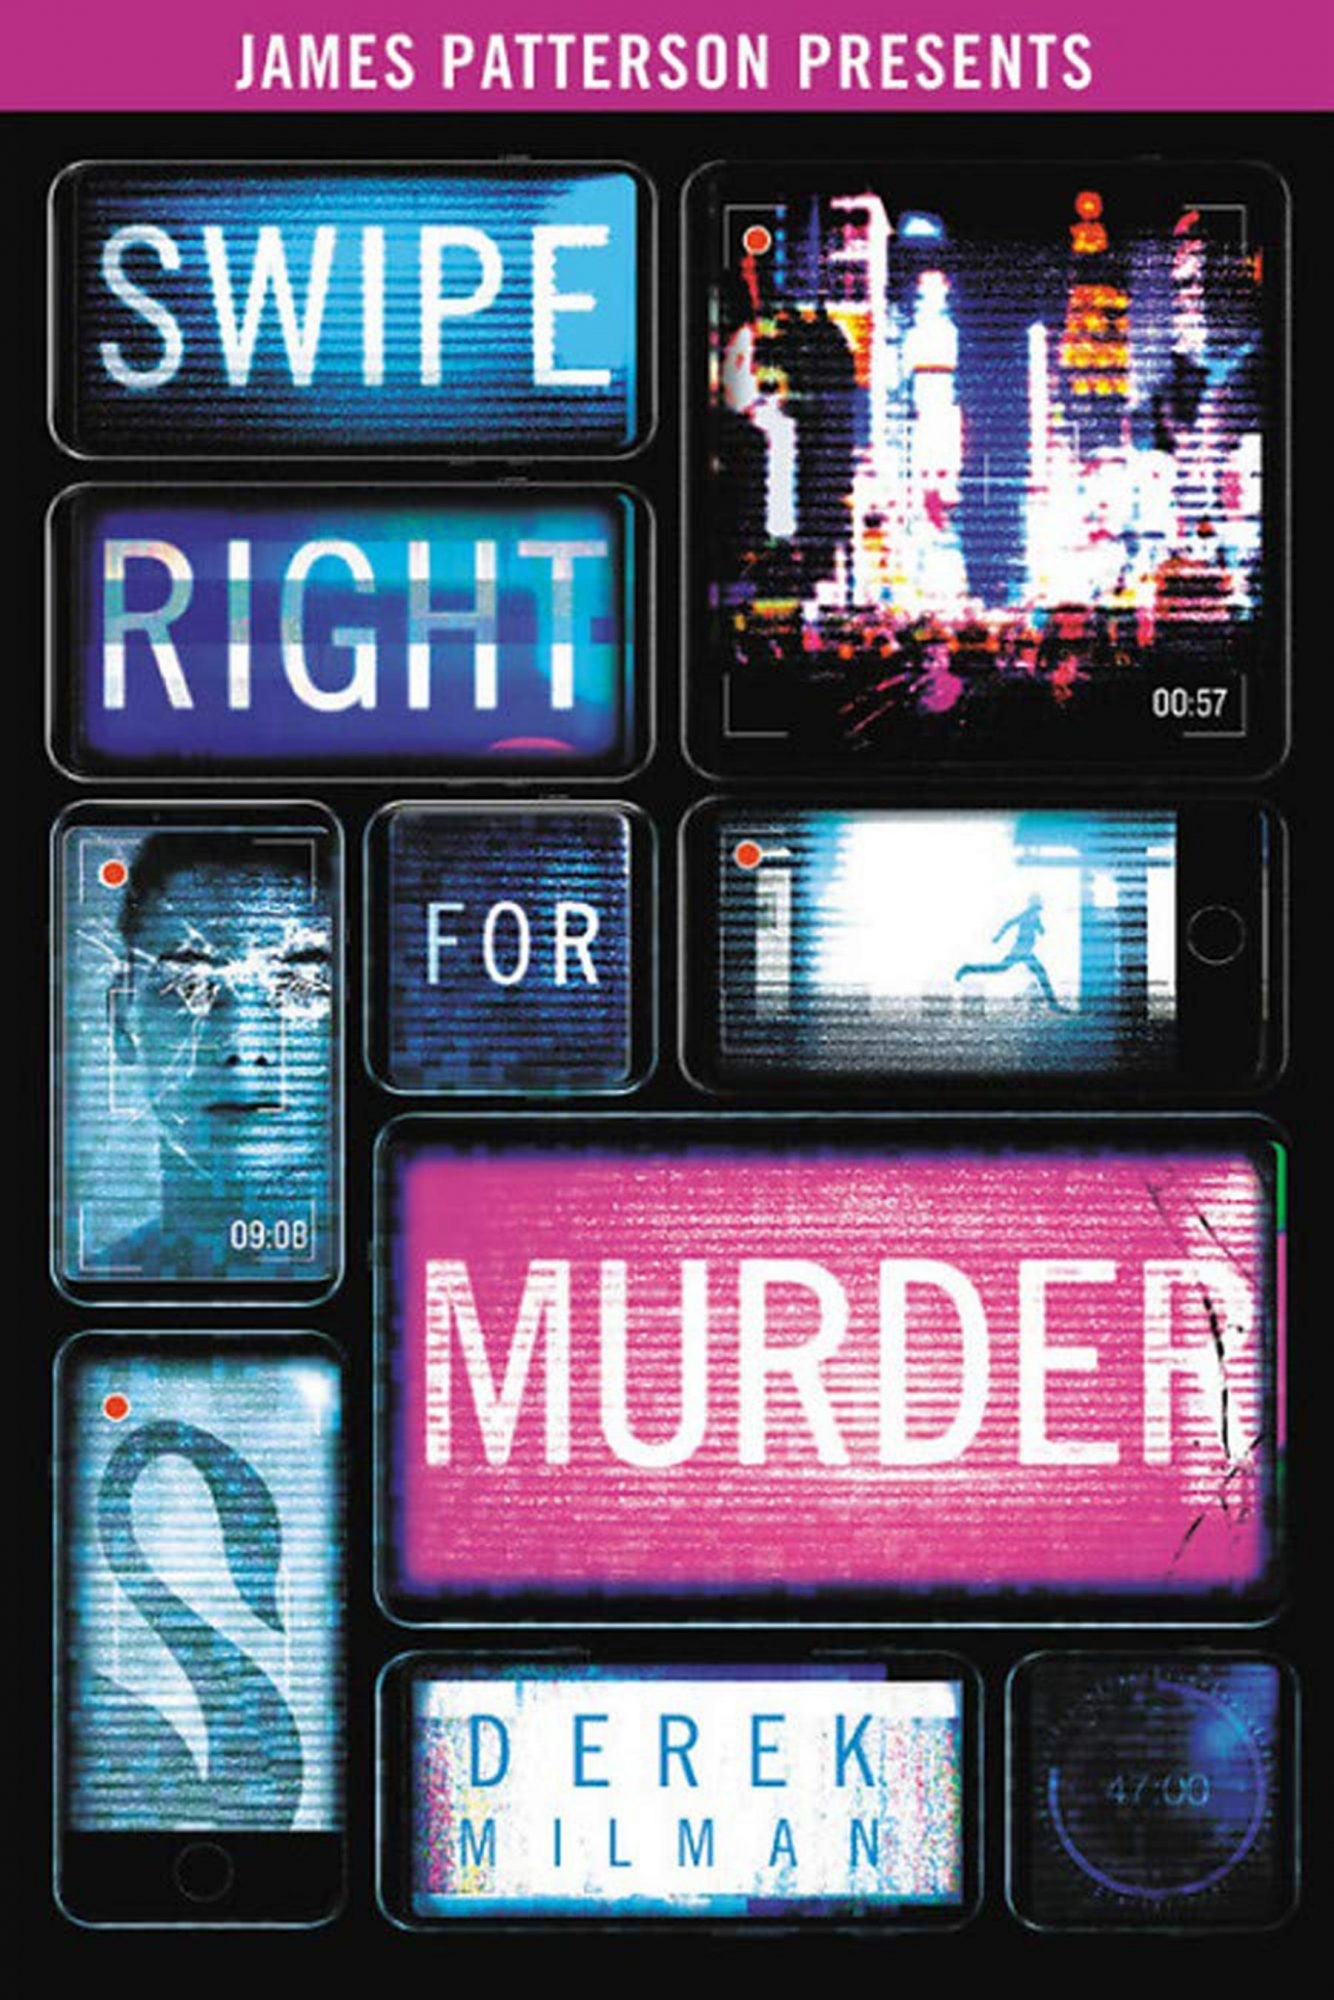 Swipe Right for Murder by Derek MilmanPublisher: Jimmy Patterson